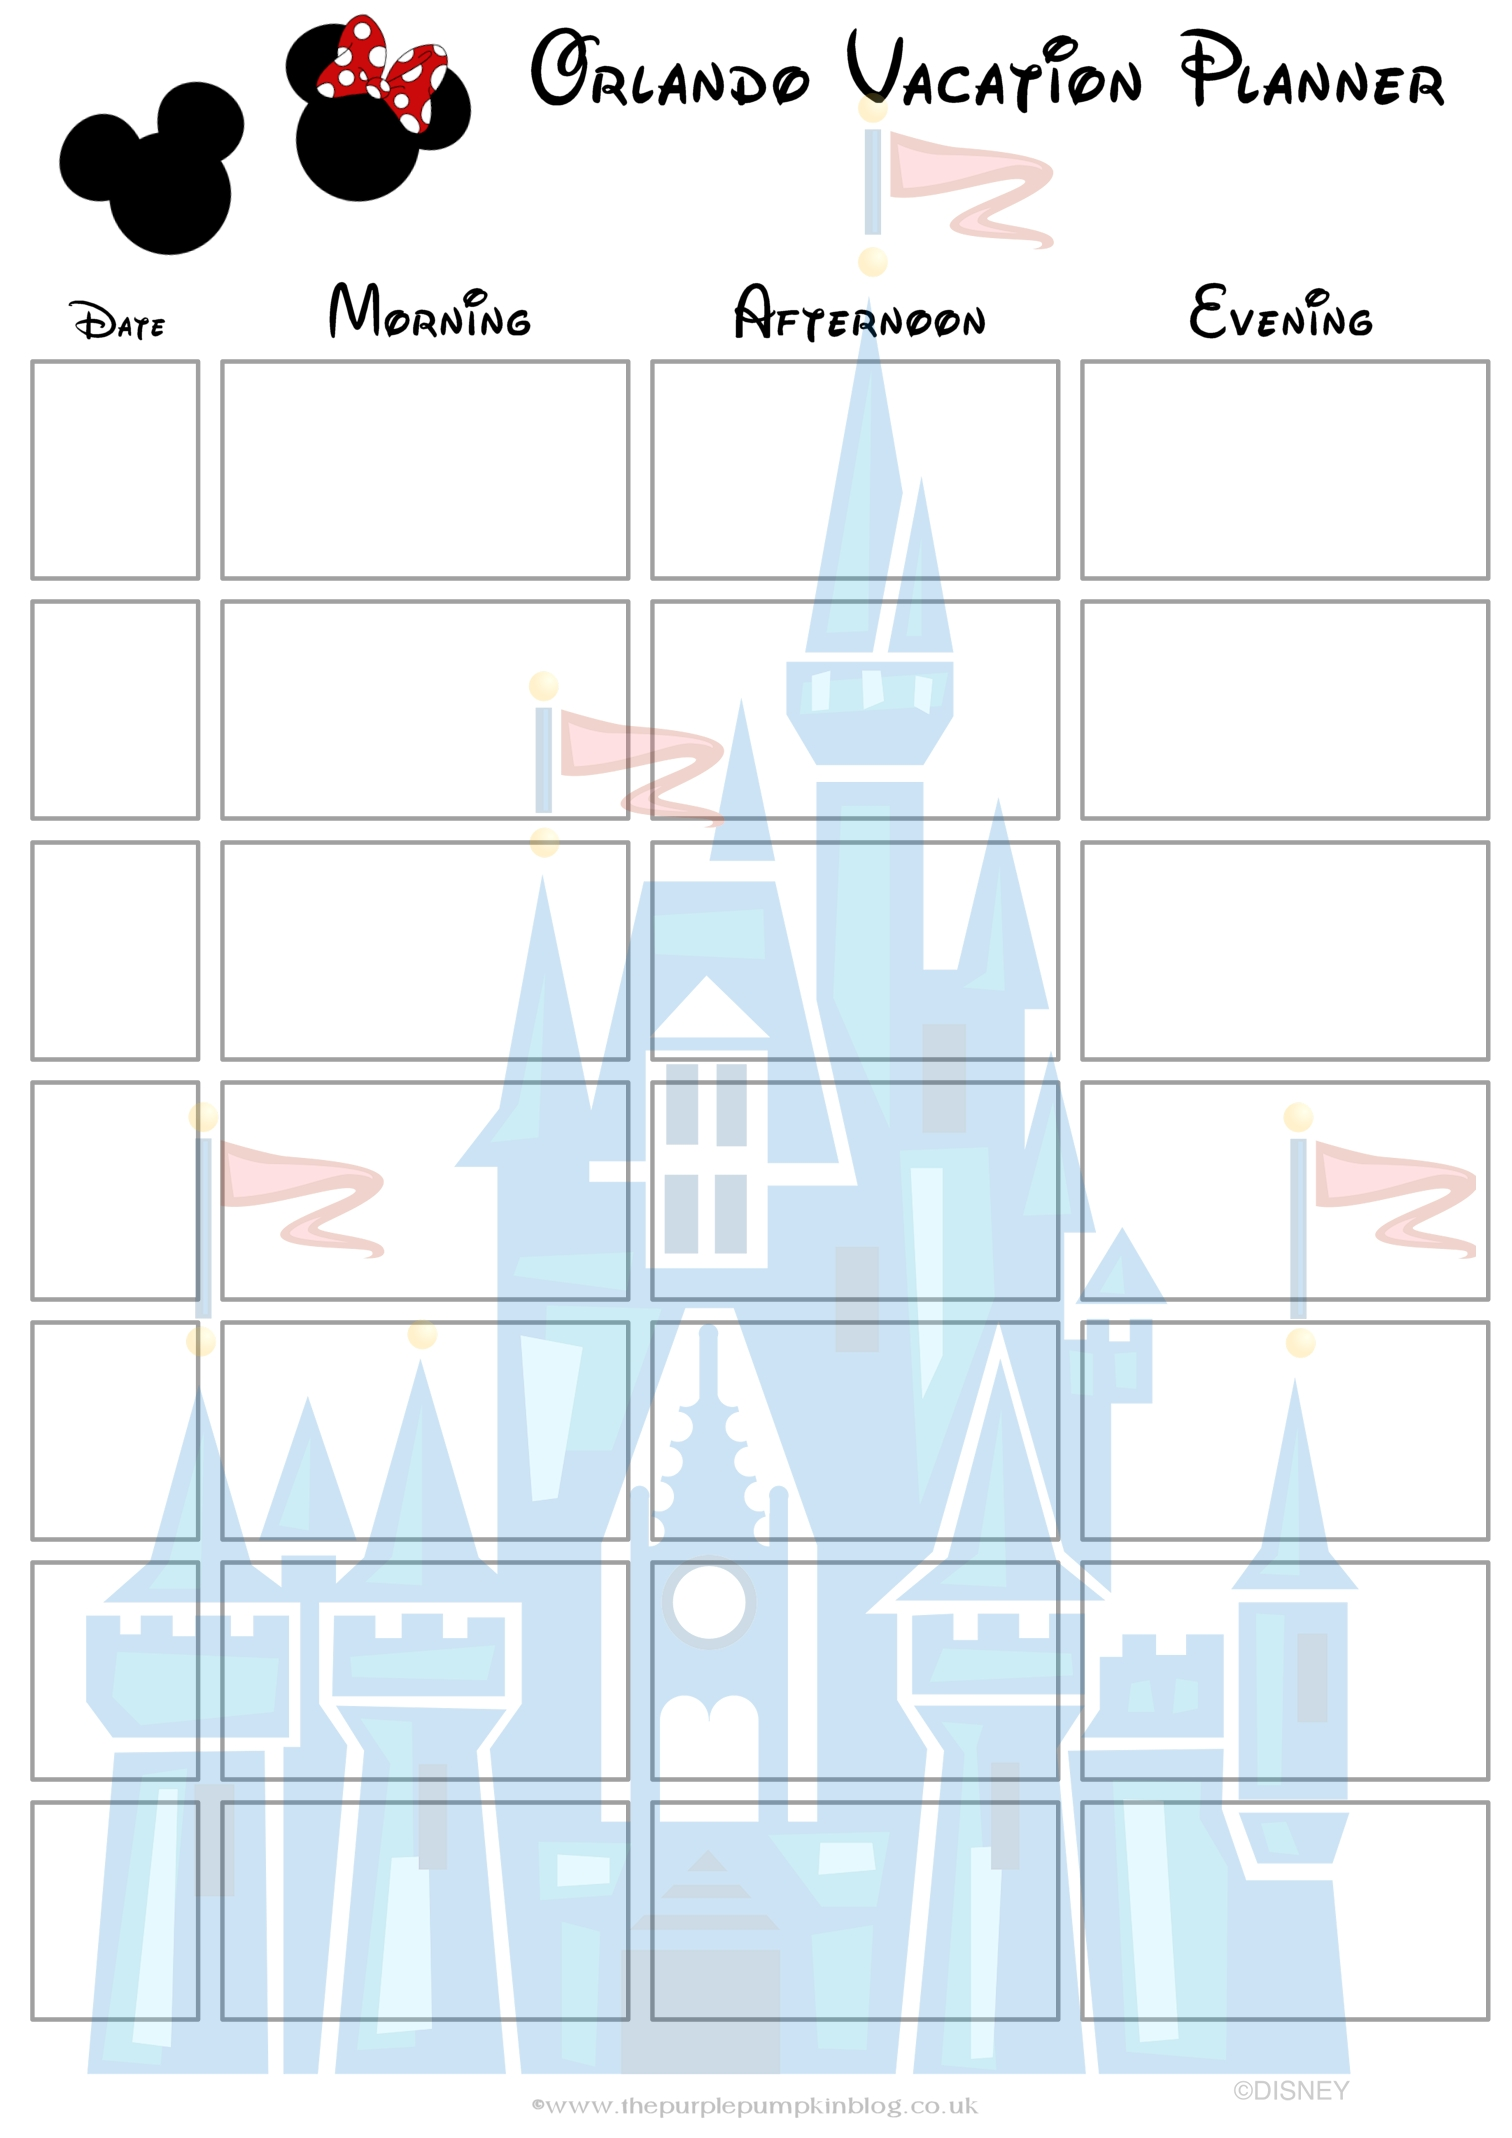 Orlando, Walt Disney World Vacation Planner | Free Printable within 1 Week Vacation Calendar Printable